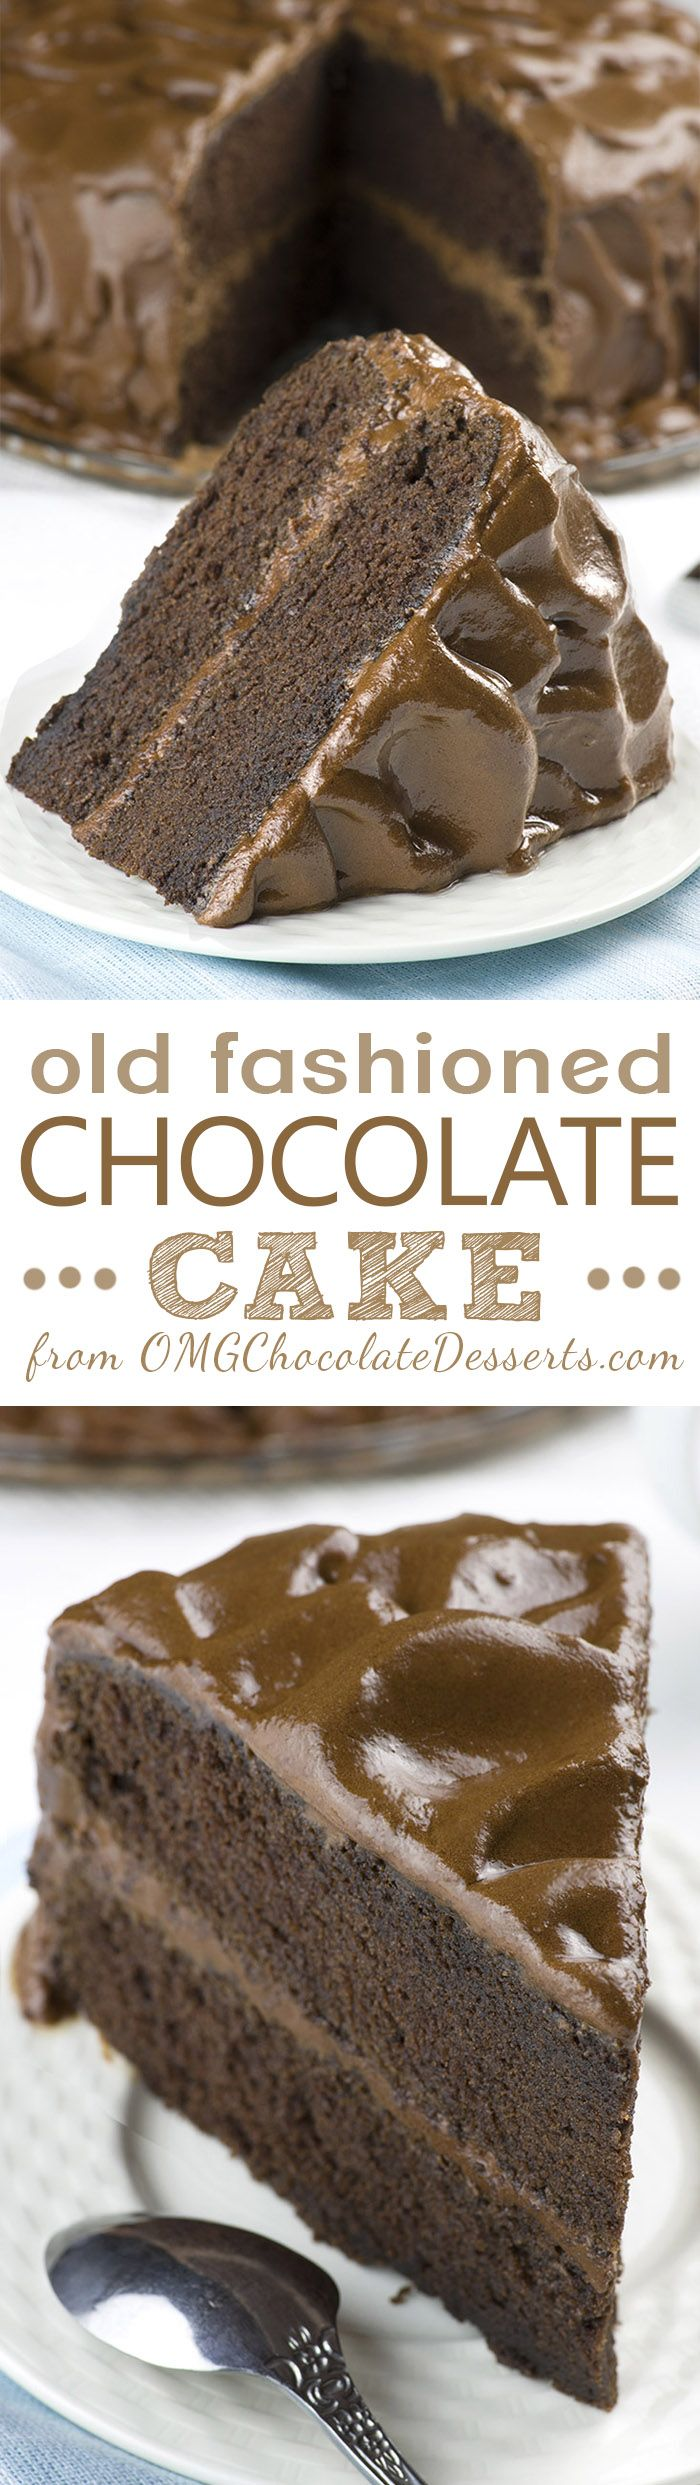 Old fashioned Chocolate Cake is dangerously delicious, rich and decadent cake…